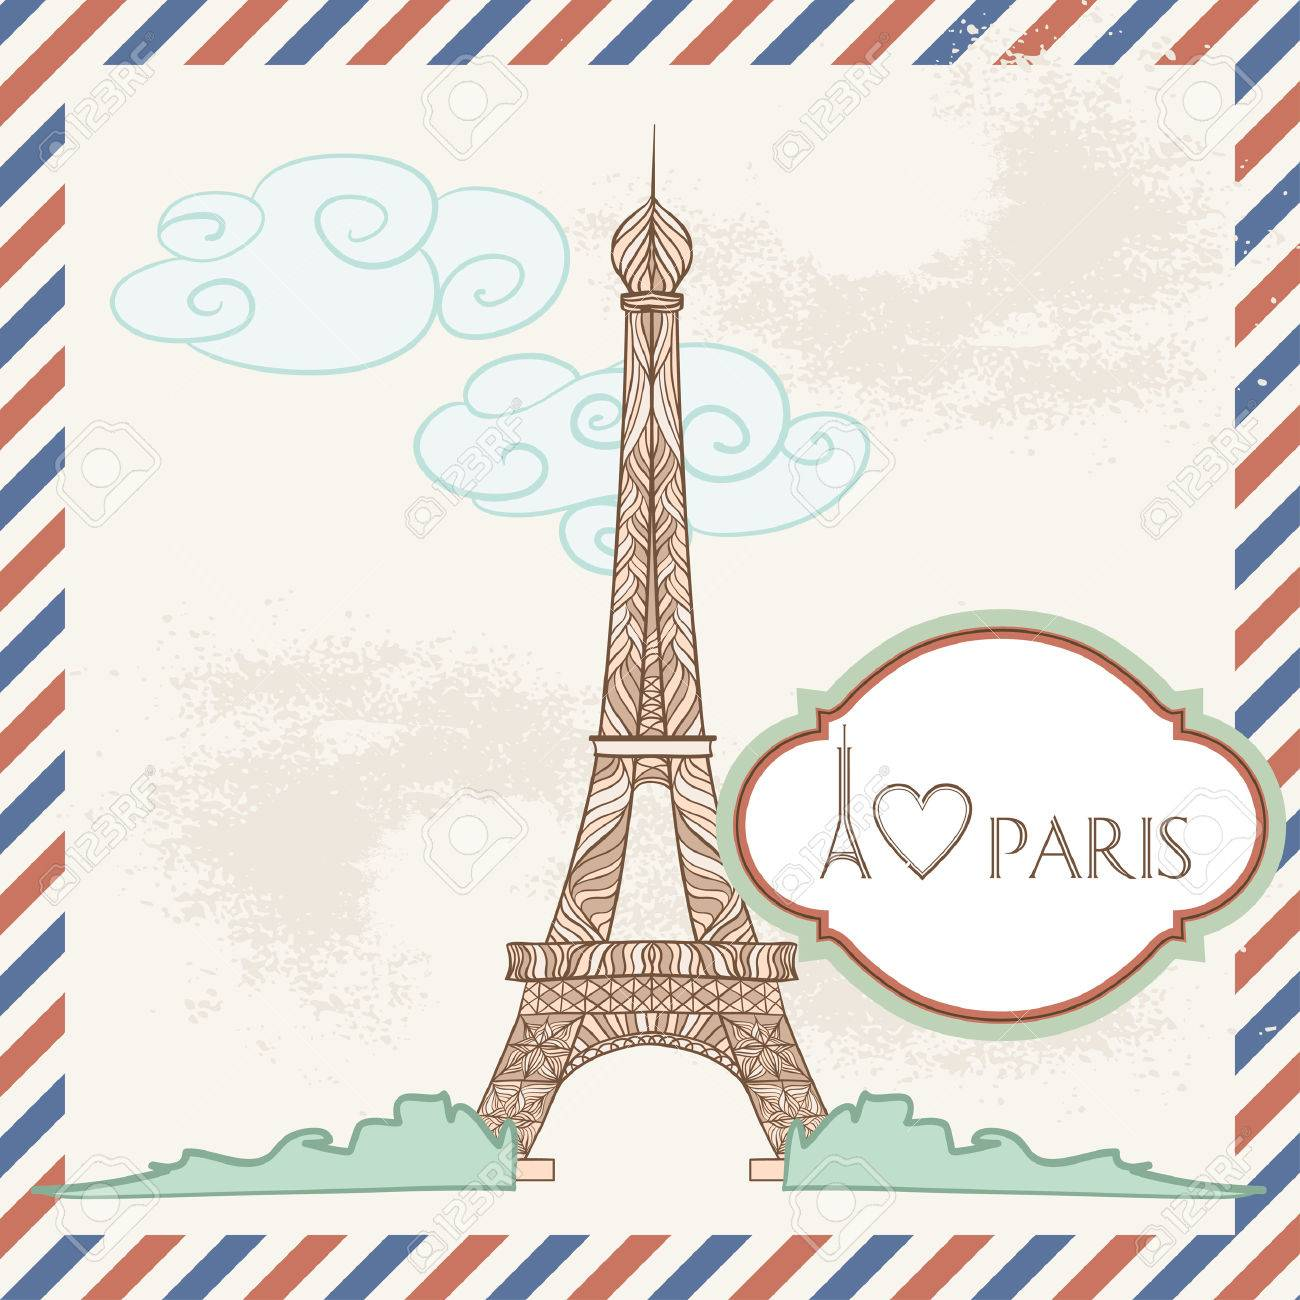 vector vector postcard with france image decorative eiffel tower and frame with text